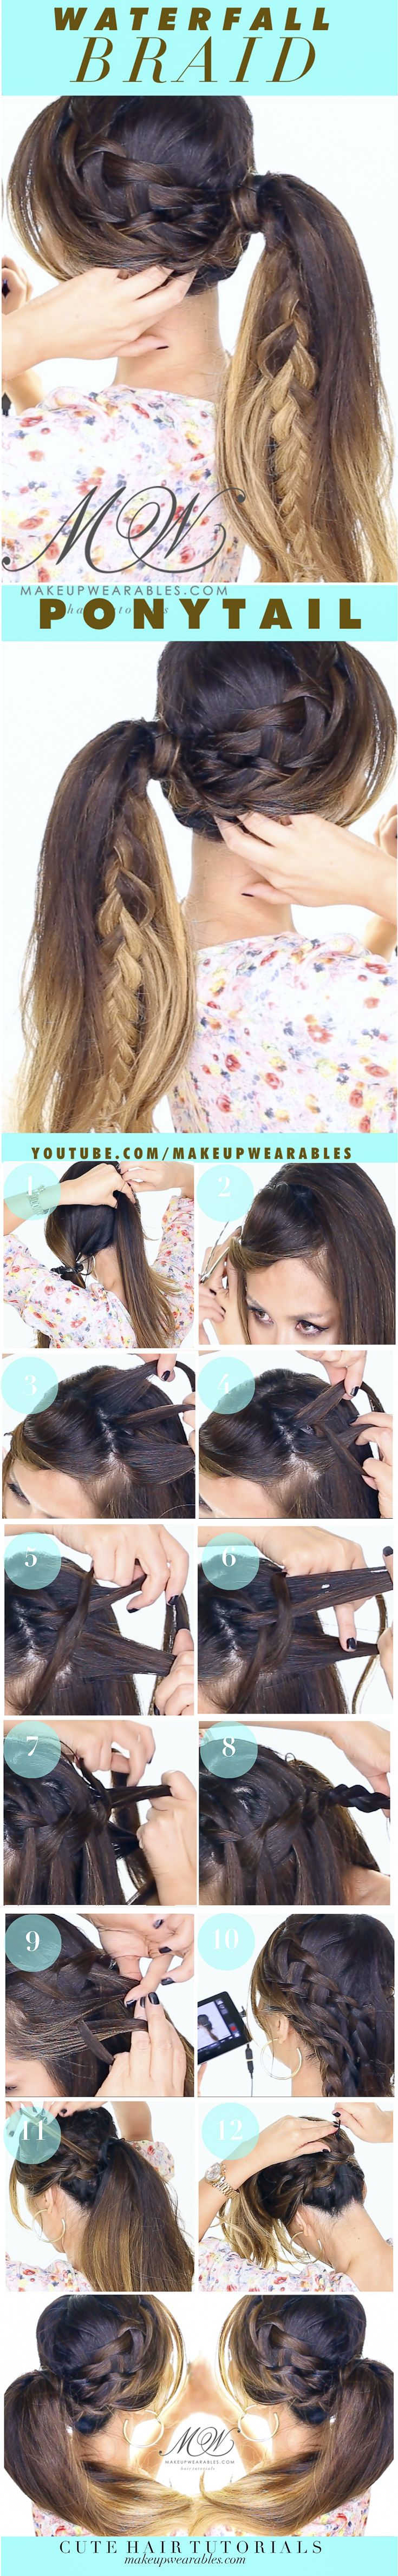 Waterfall Braid into a Perky Ponytail   Cute Fall Hairstyles